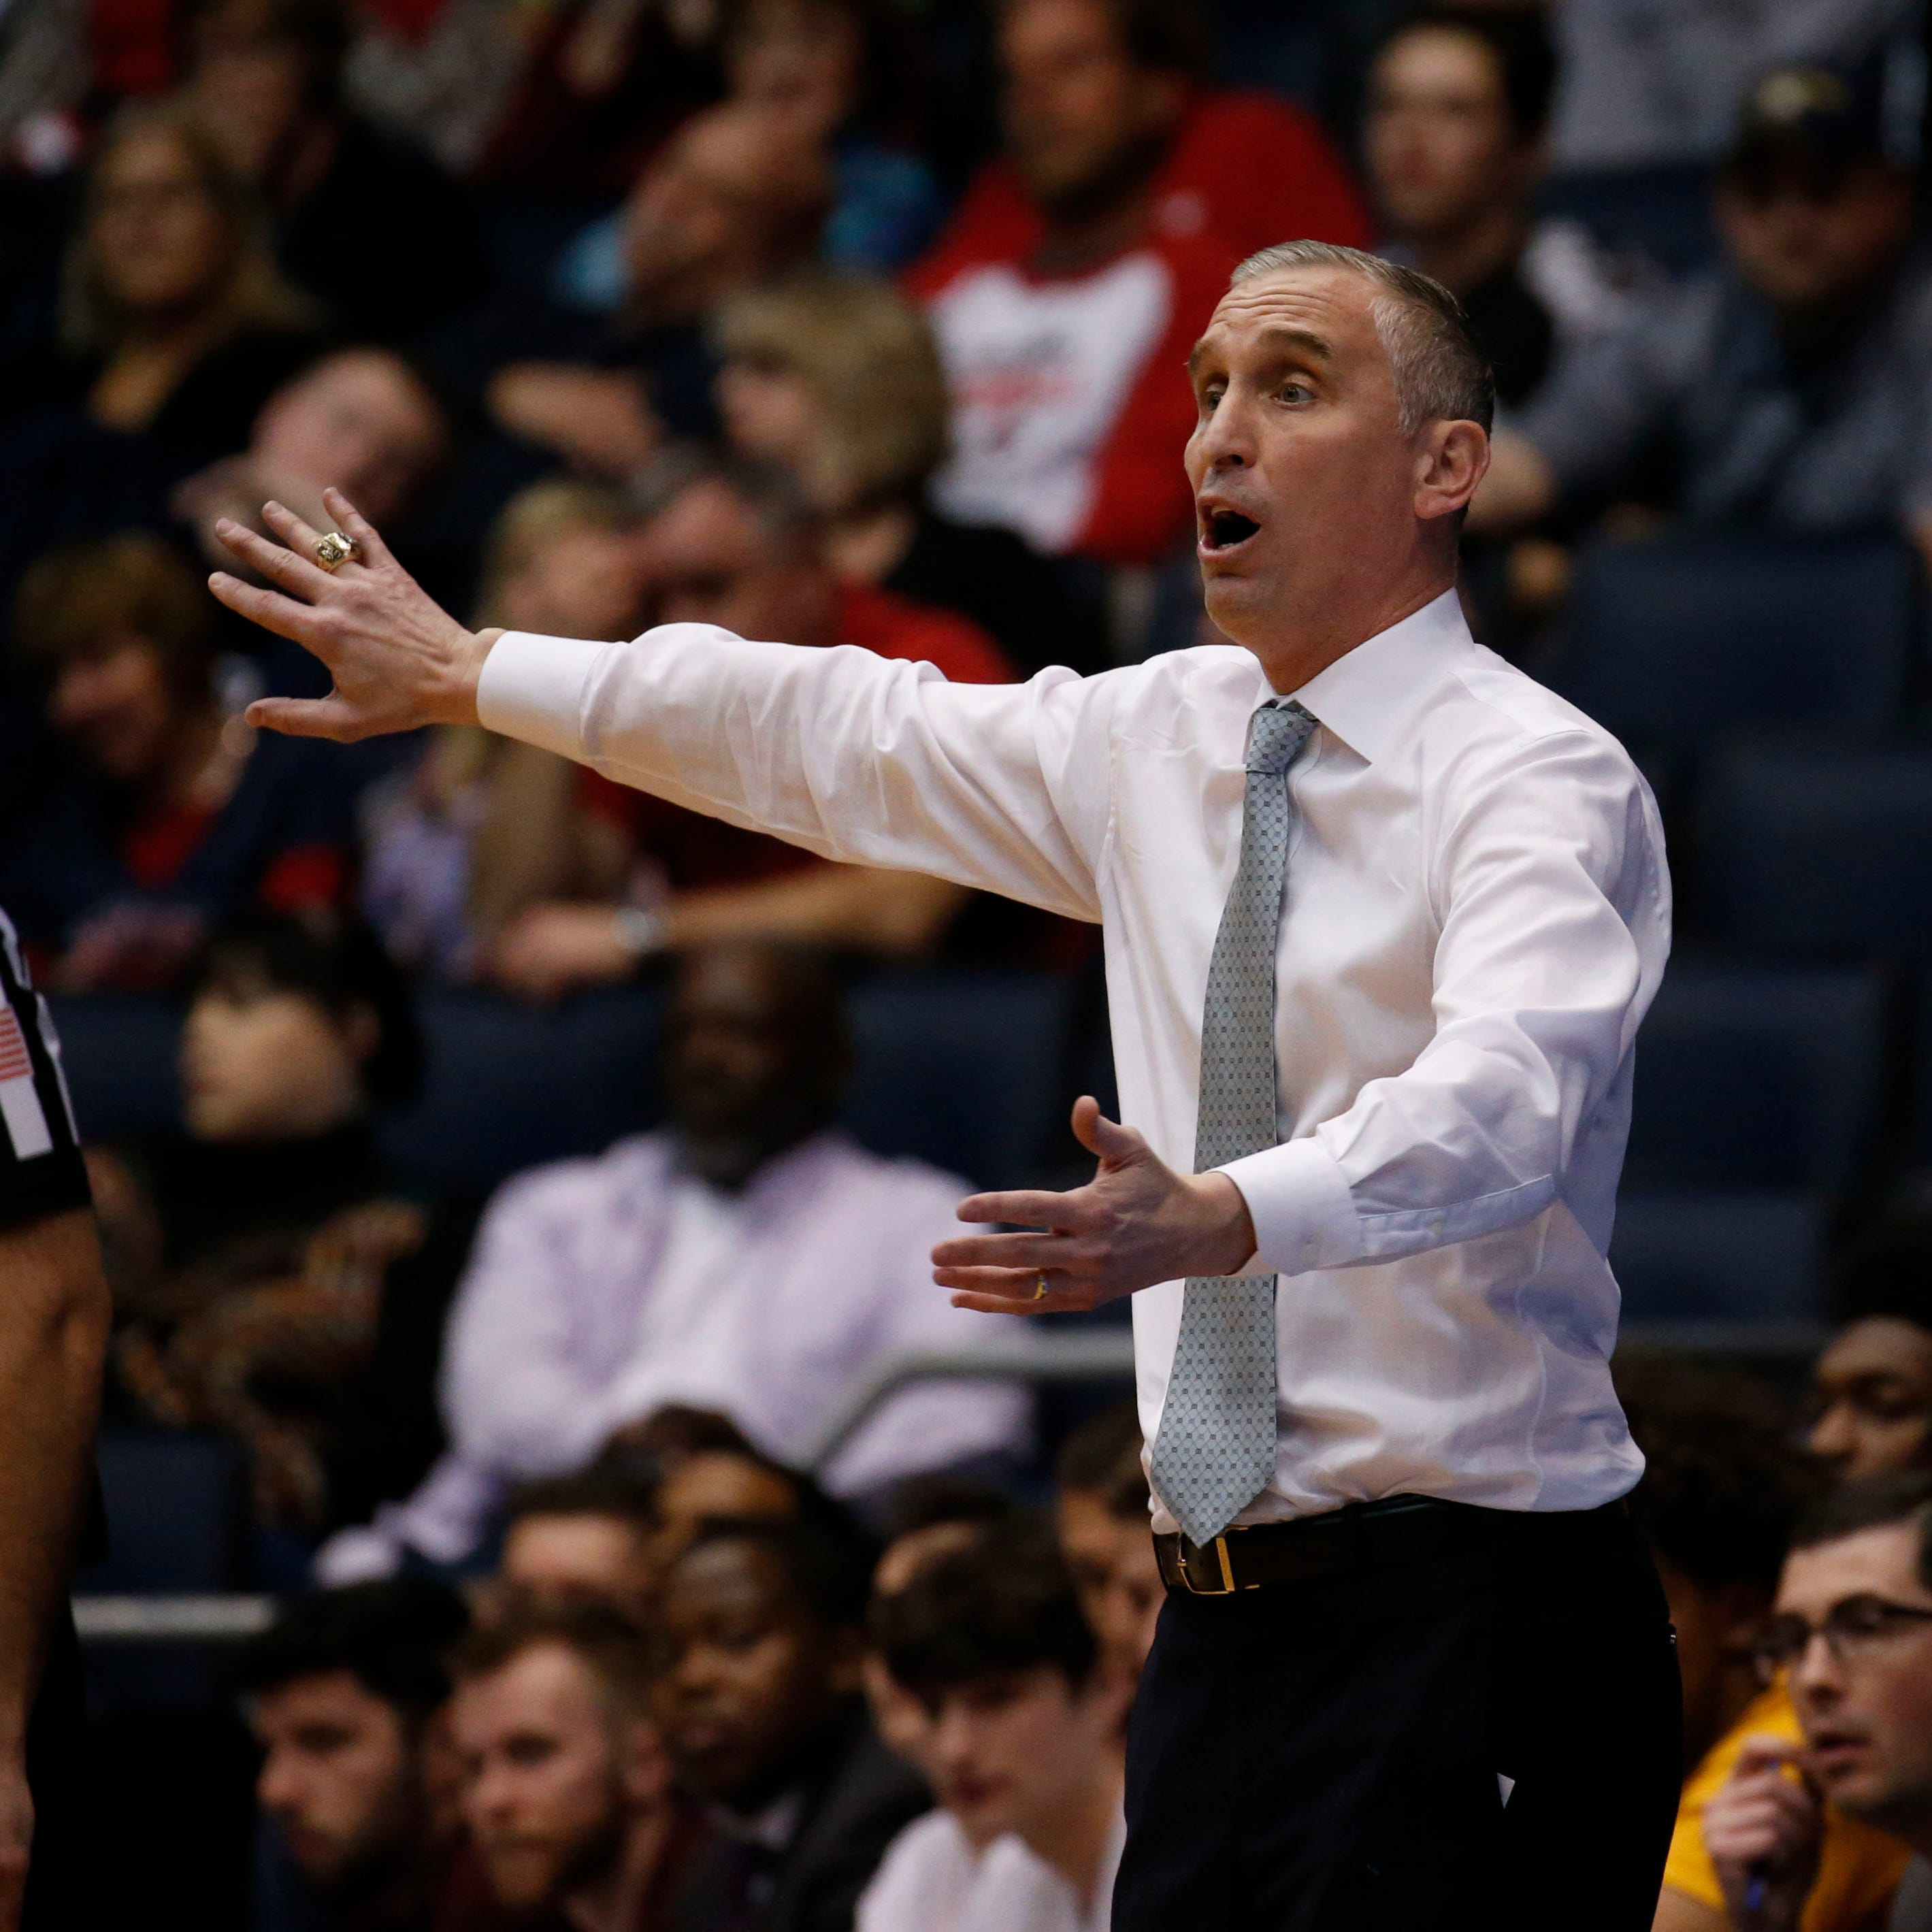 Bobby Hurley to St. John's? ASU basketball coach's own words could offer hint about future